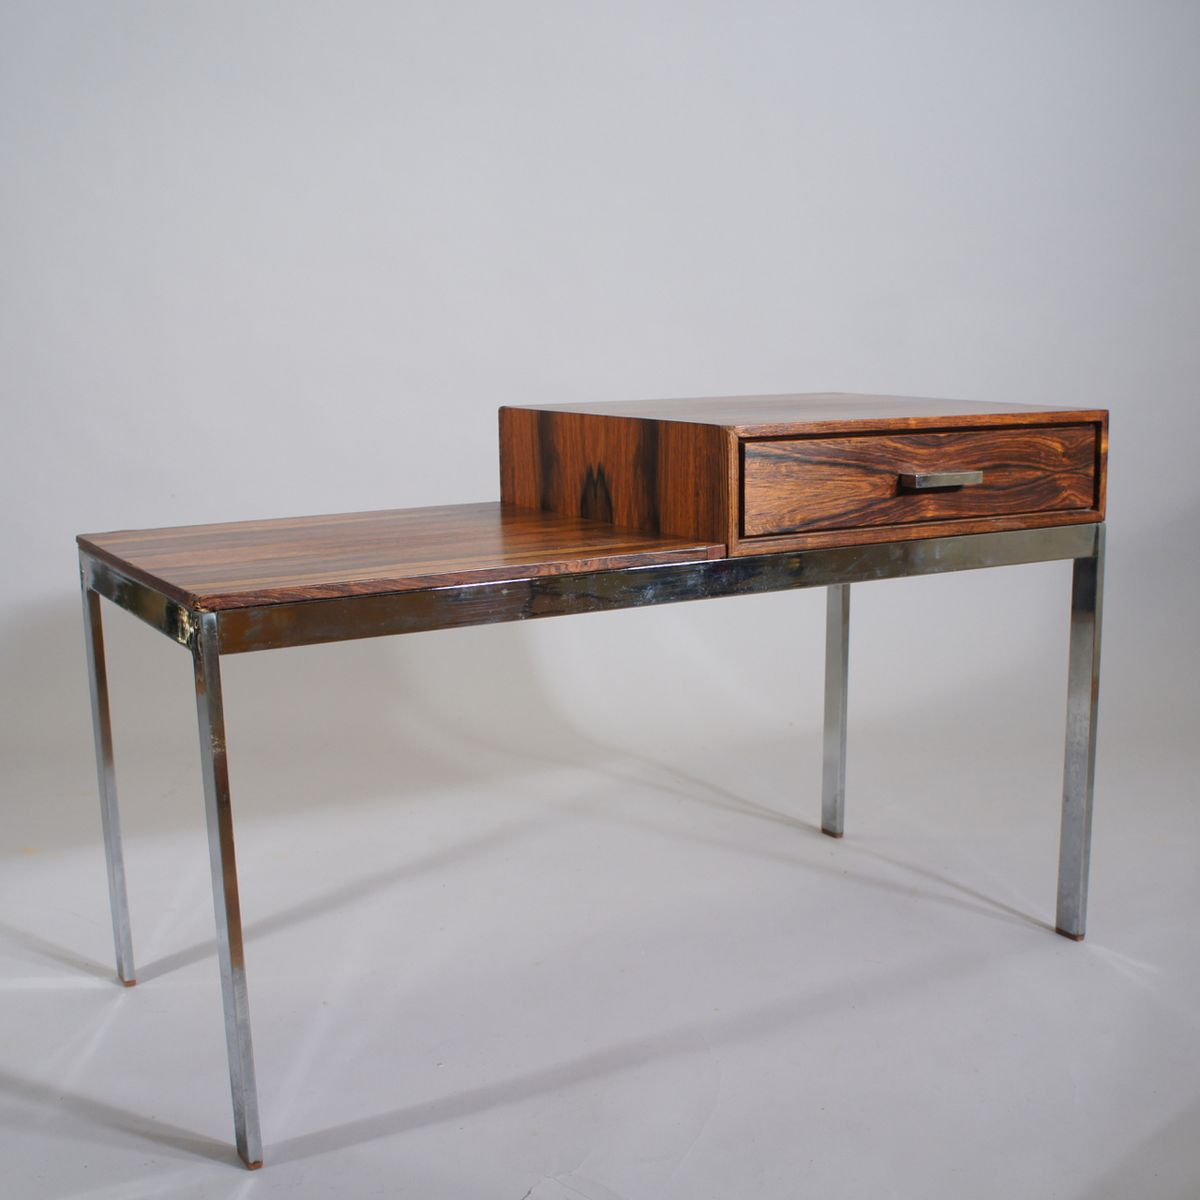 Mid century metal and wood alpacka bench with drawer by for Ikea metal cart with drawers